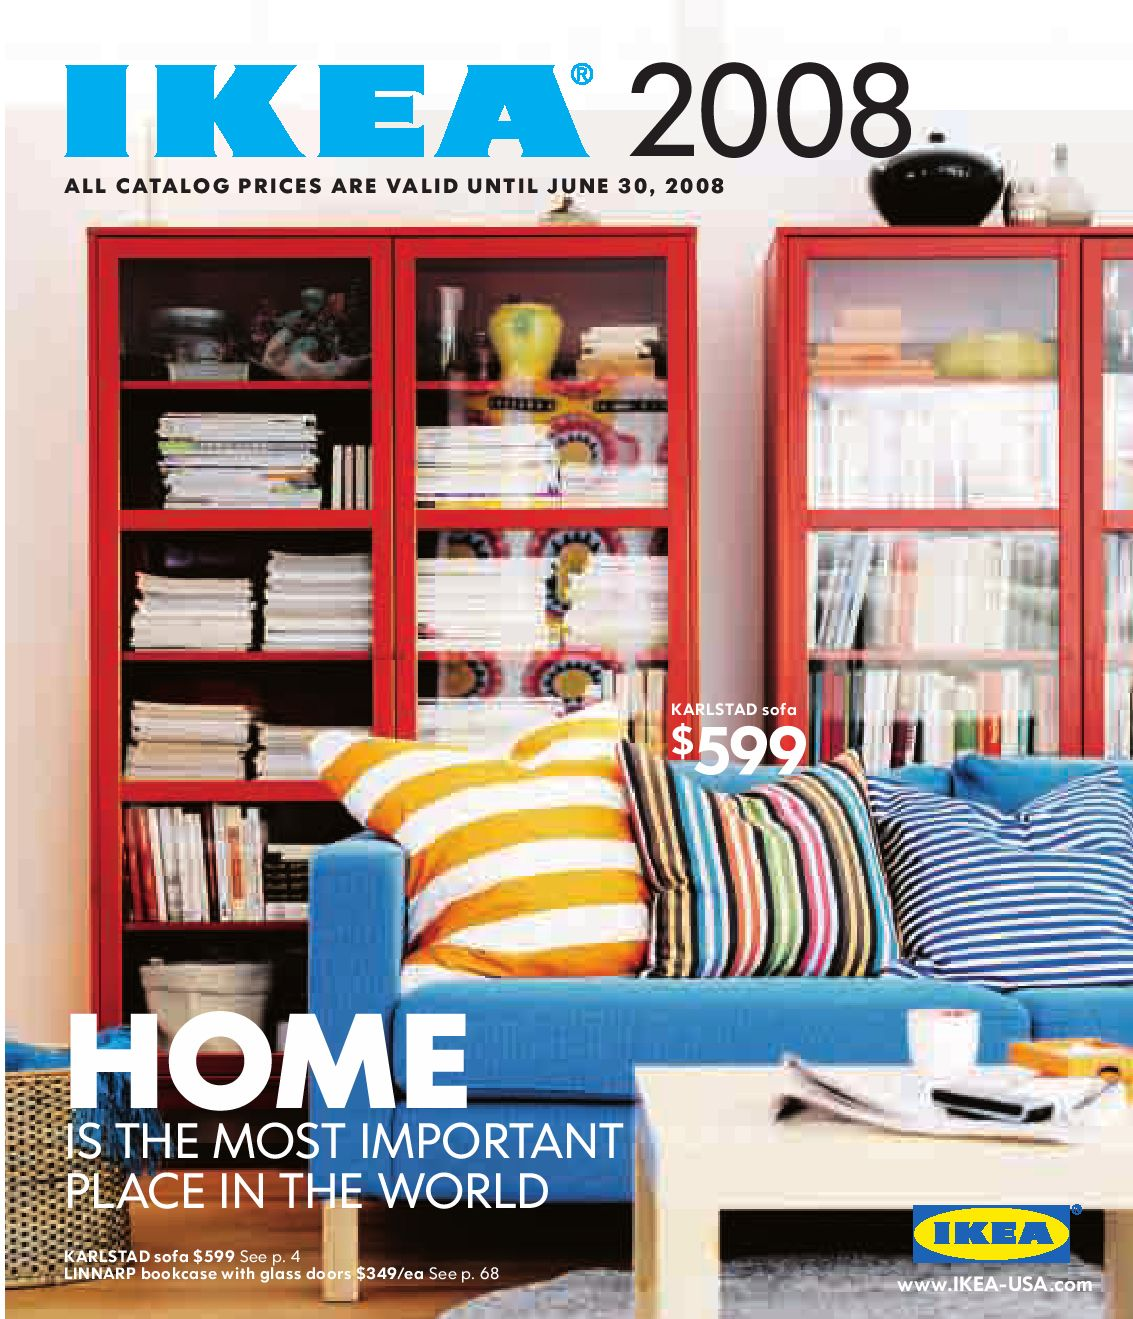 Ikea Online Bettsofa Ikea 2008 Catalog By Odabashianr Issuu